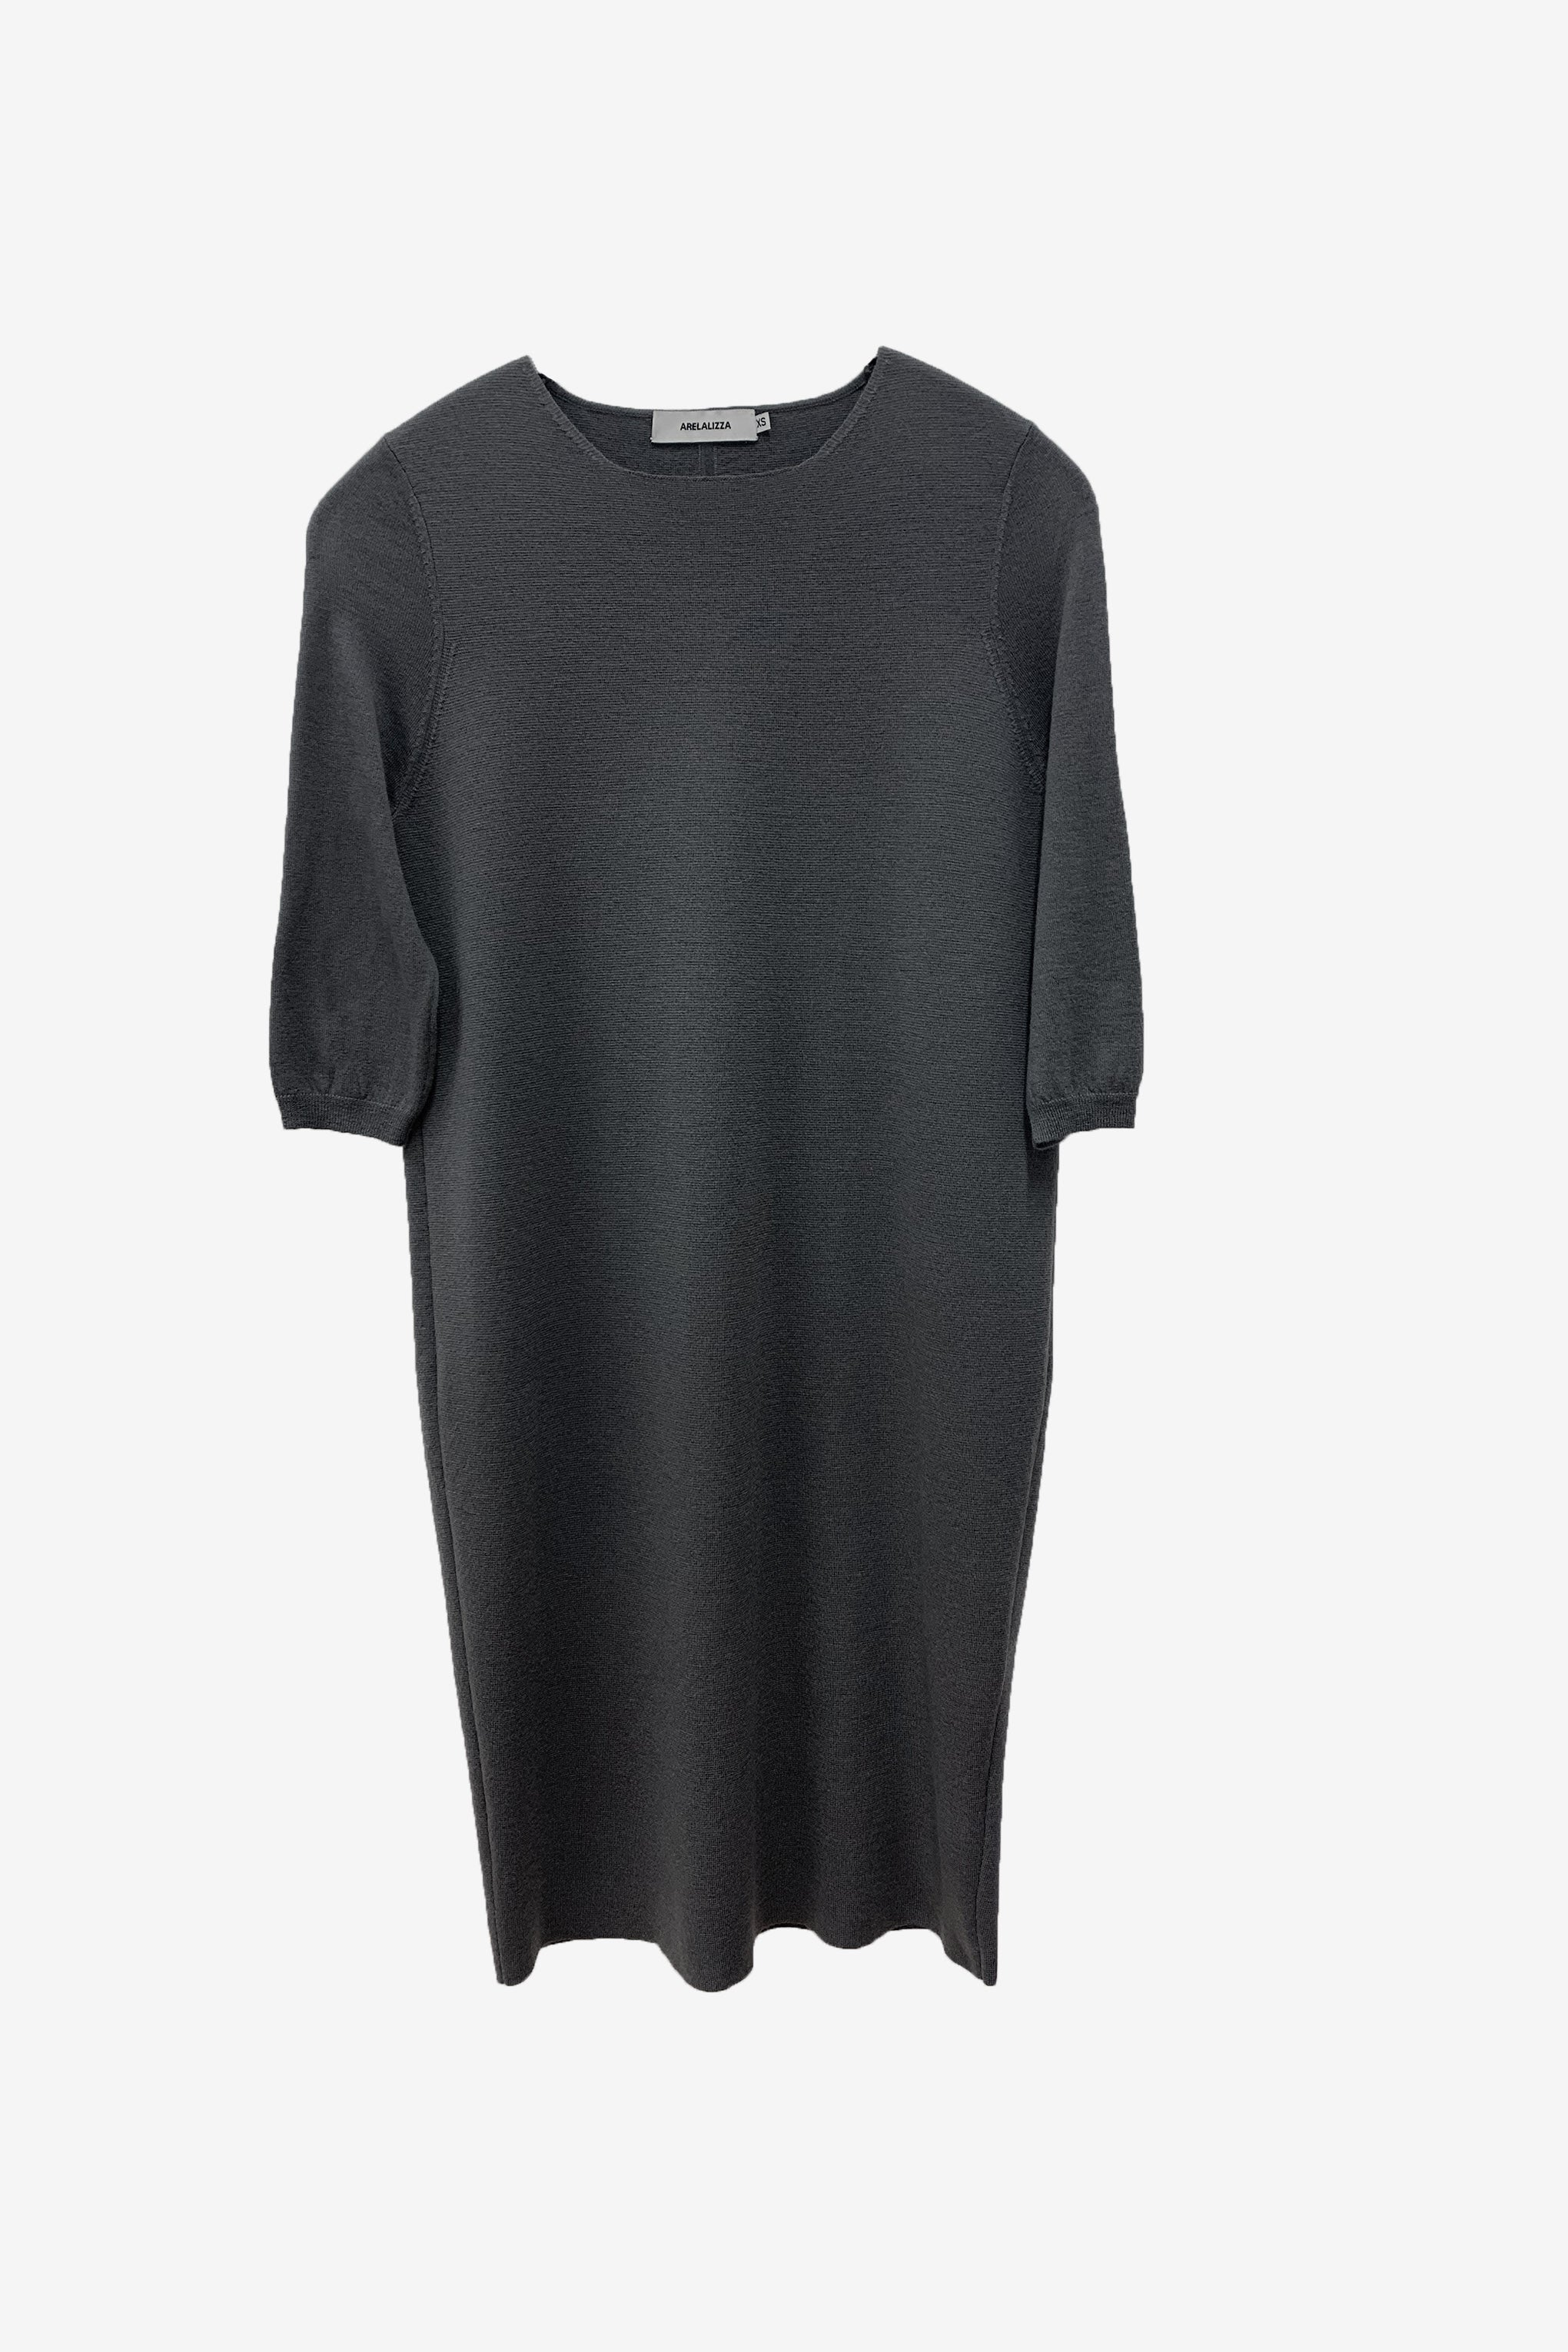 For Good: Grey Dress, size XS